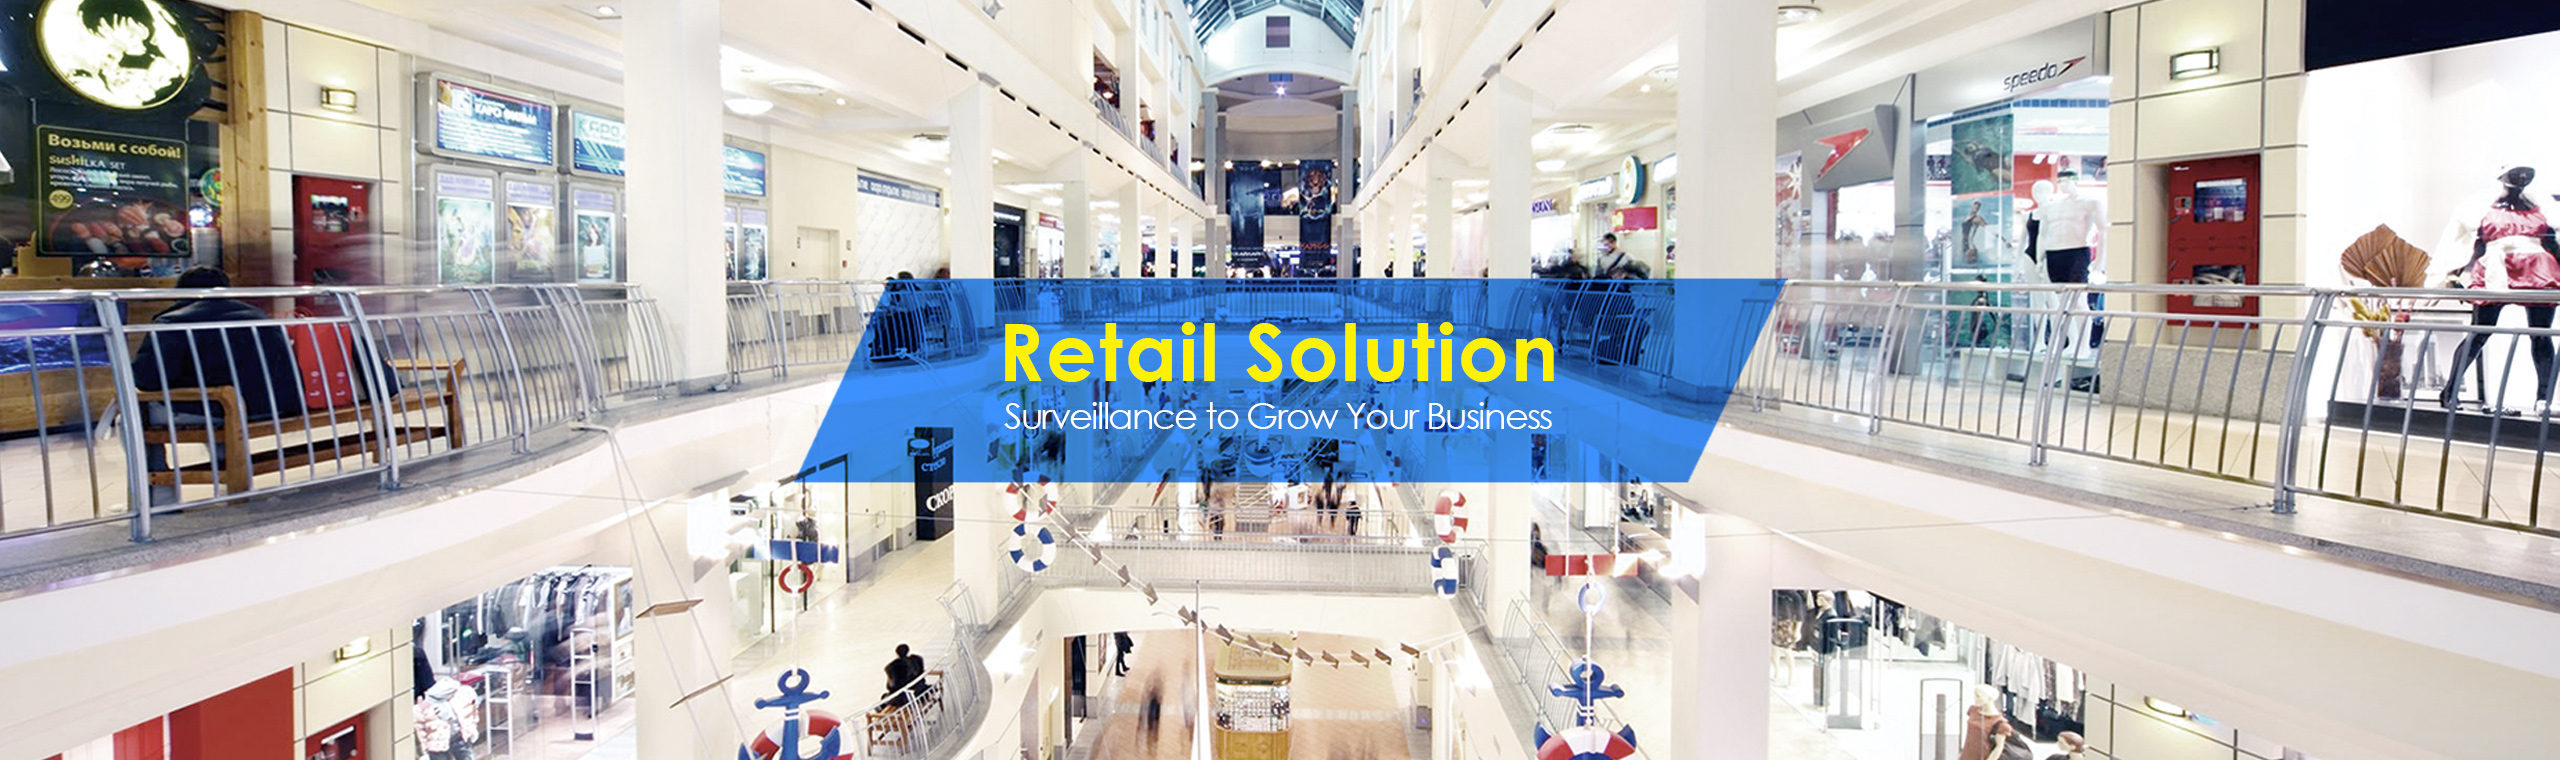 Retail Solution Banner